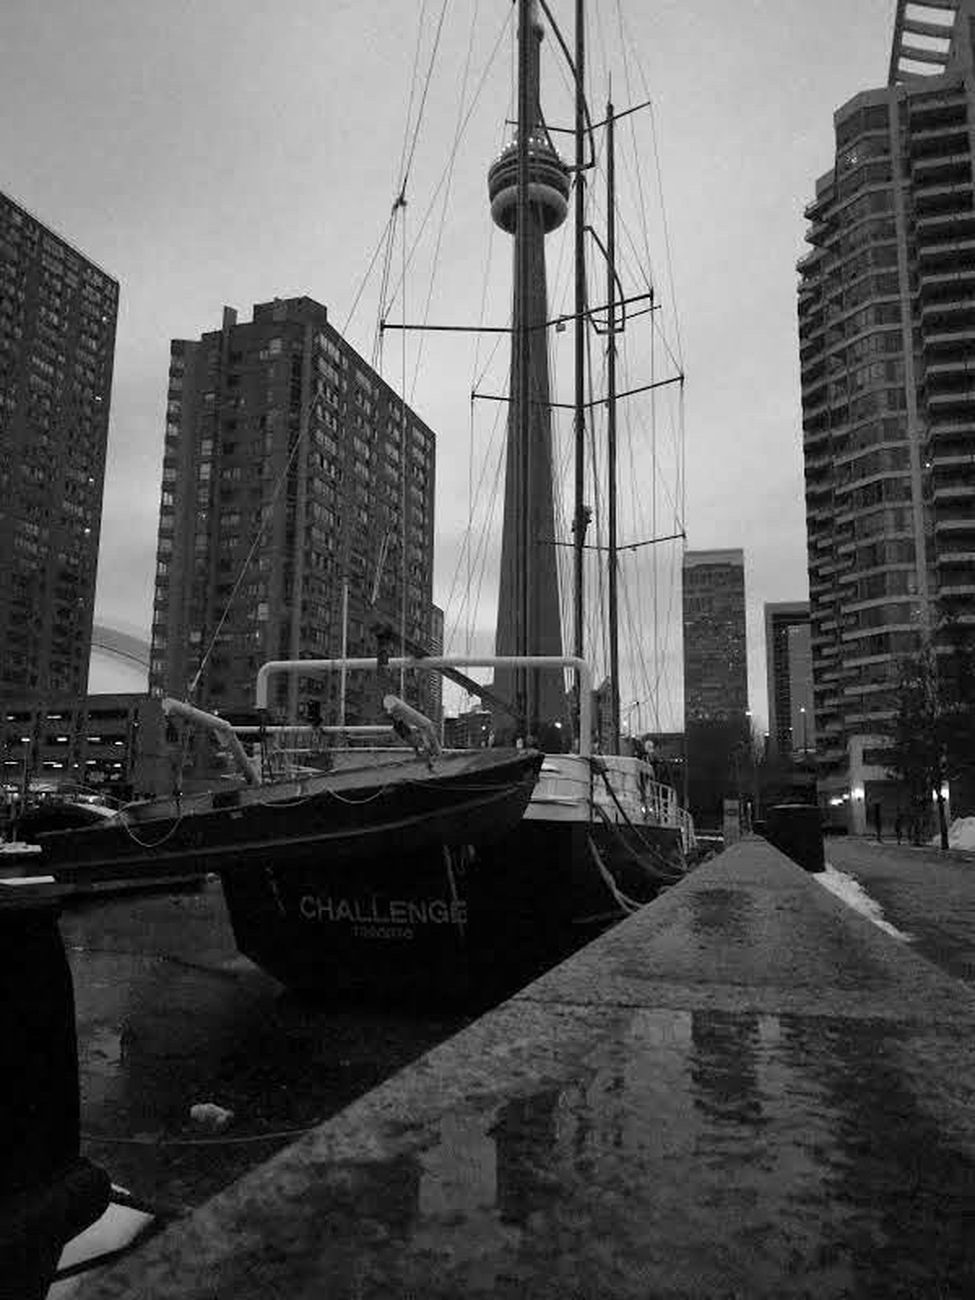 Boat Challenge _CN TOWER EVERYWHERE By Yannis Lobaina